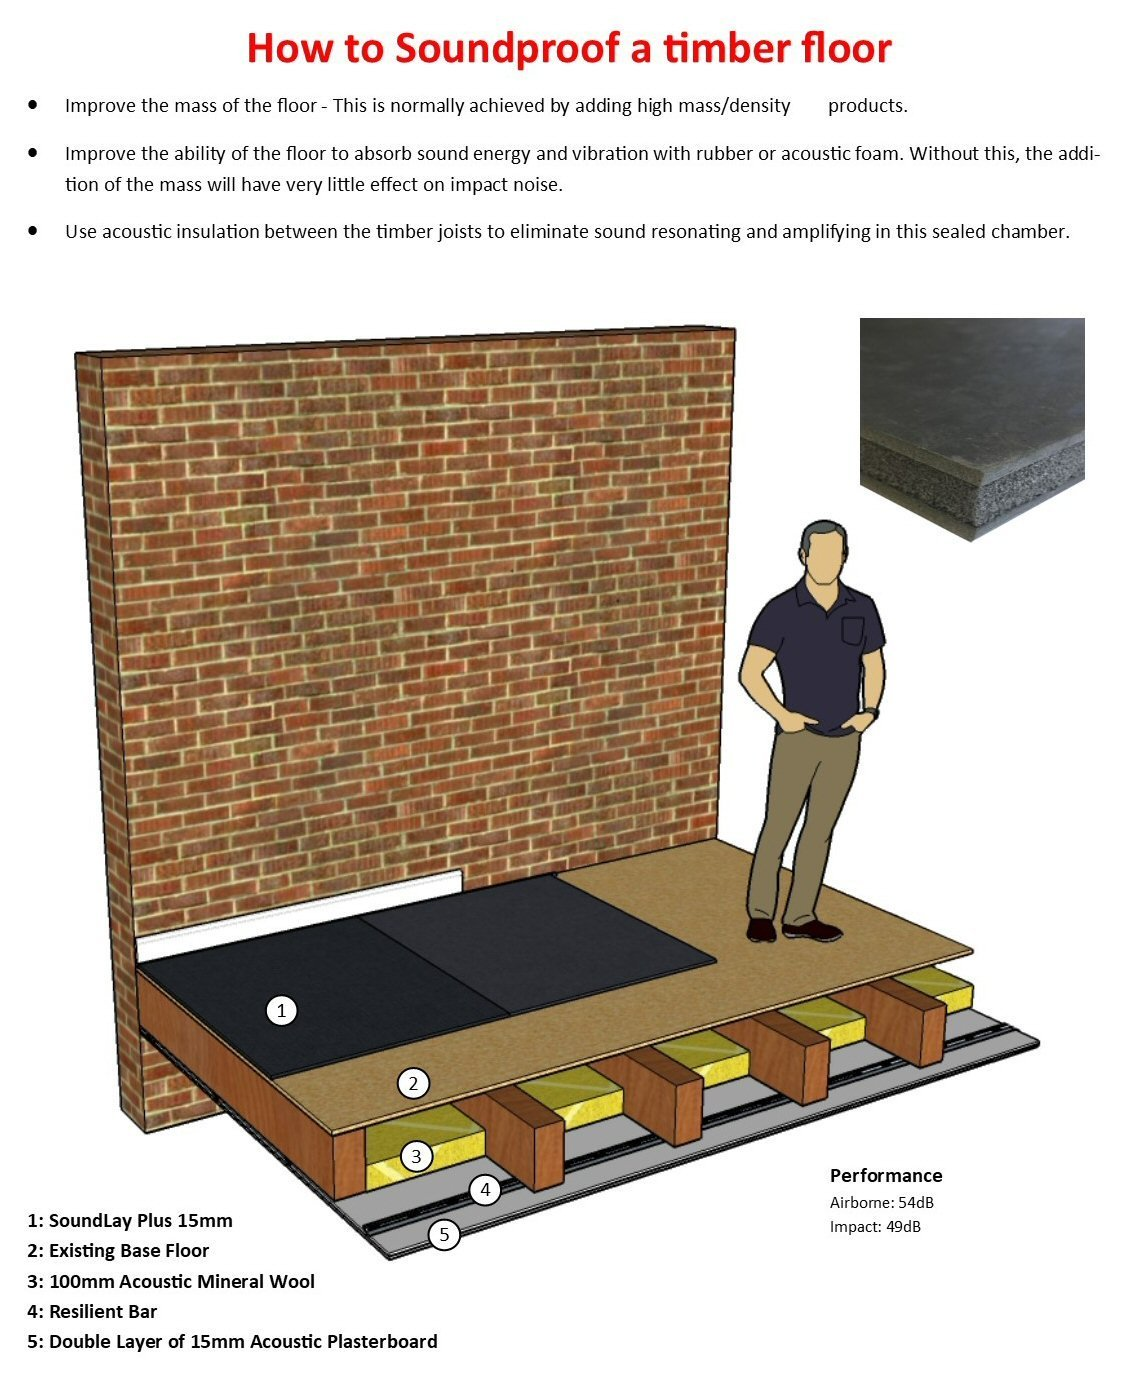 Soundproofing Guide And Help - Sound barrier between floors